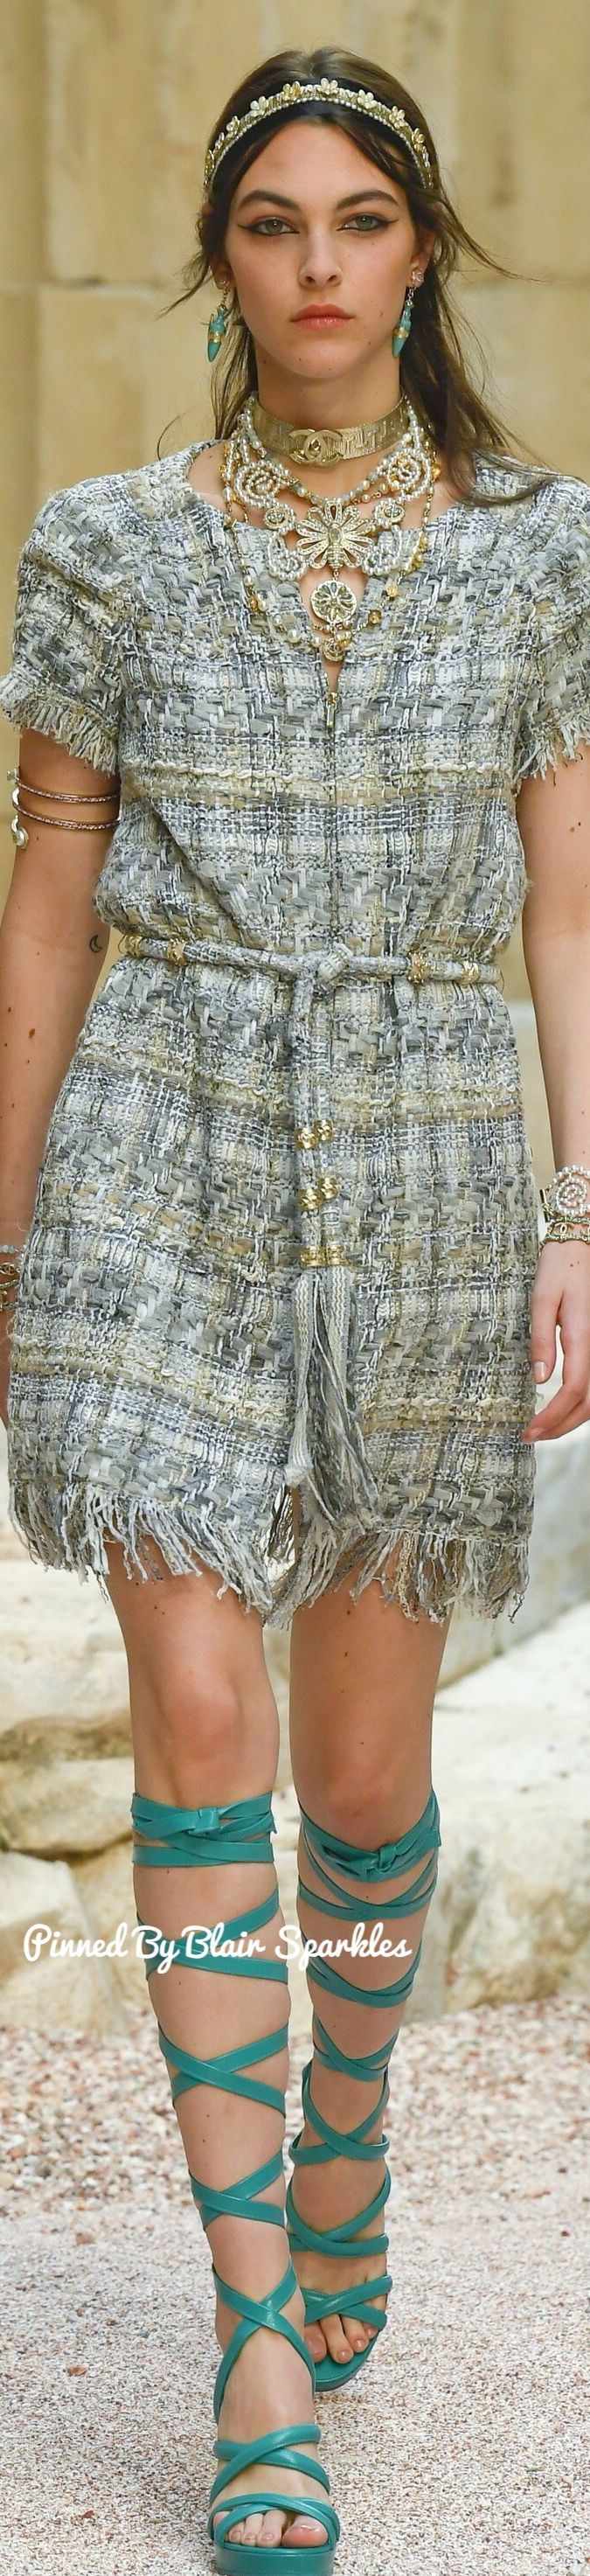 Chanel Resort 2018 ♕♚εїз | BLAIR SPARKLES |